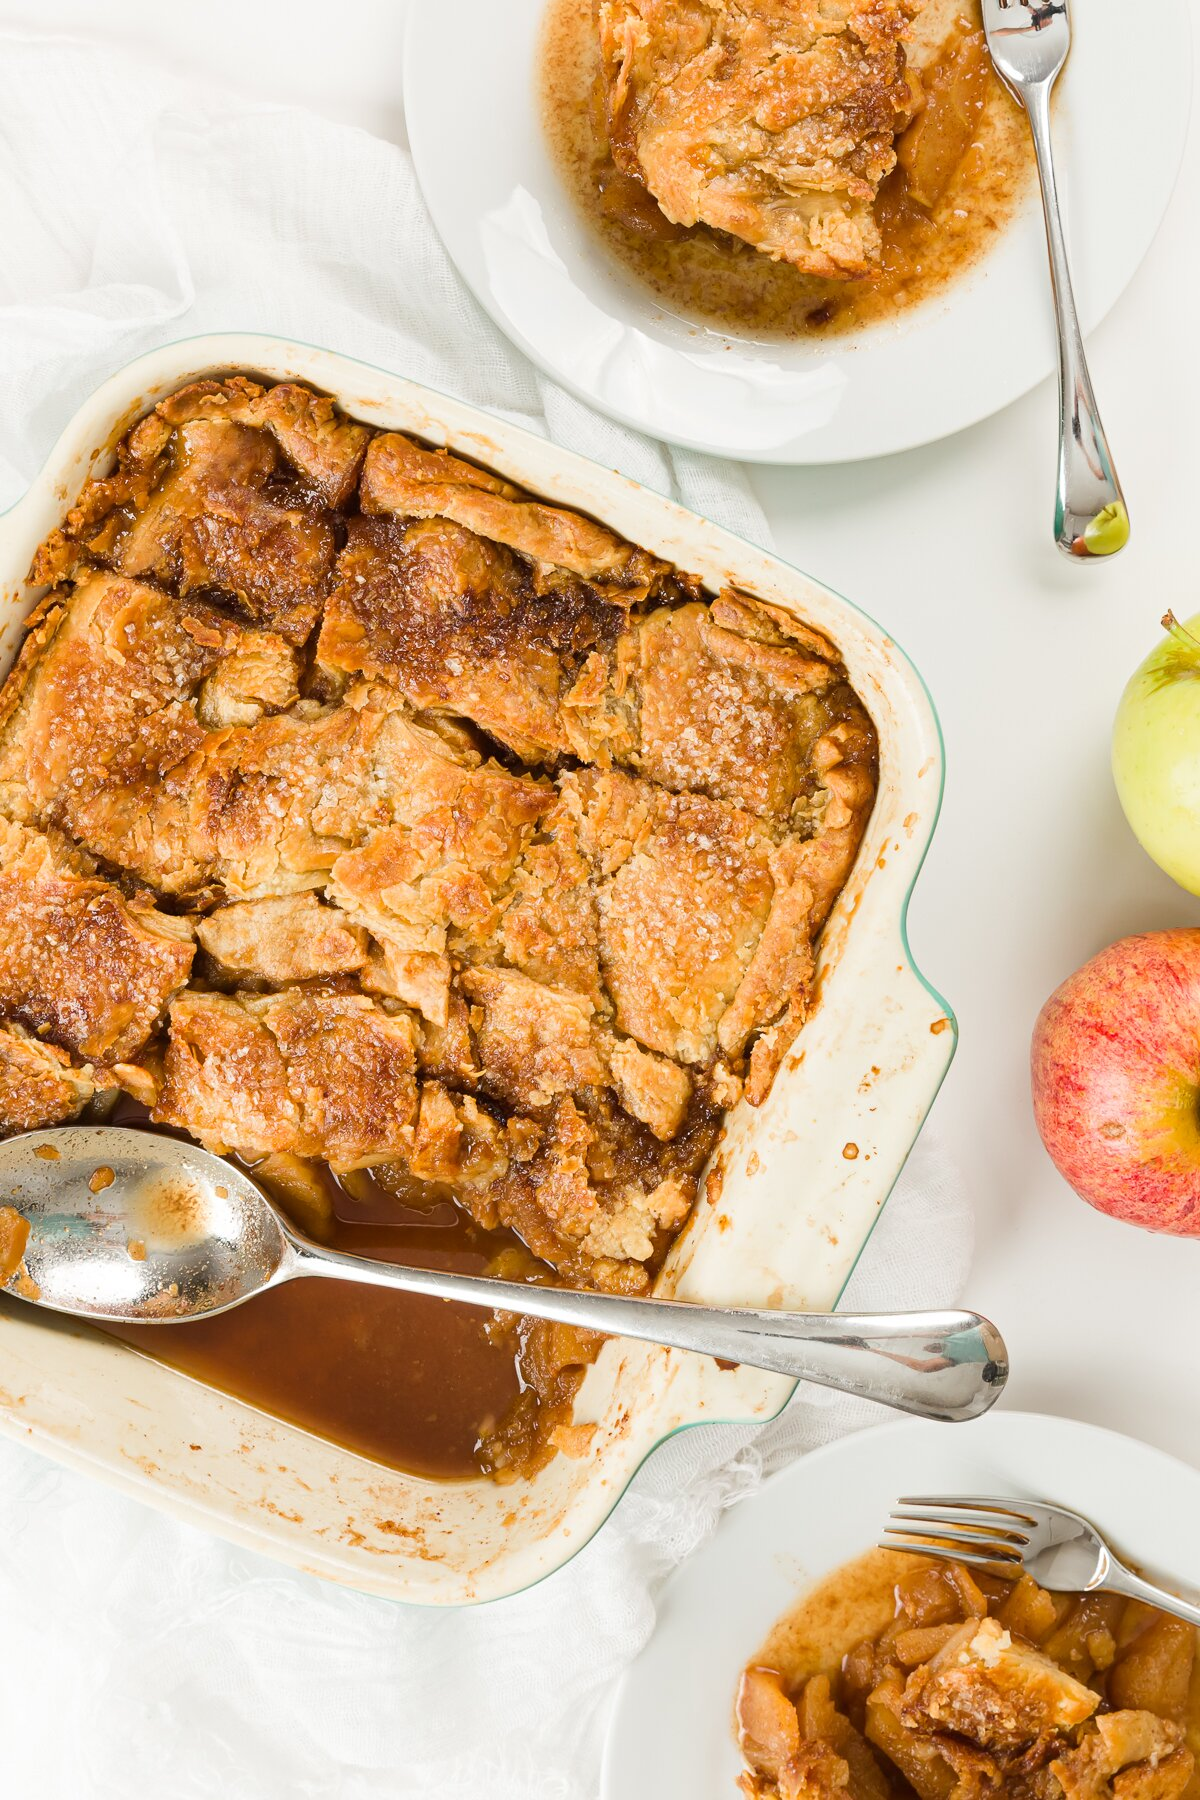 Overhead shot of pan of apple pandowdy, plates with food, and apples